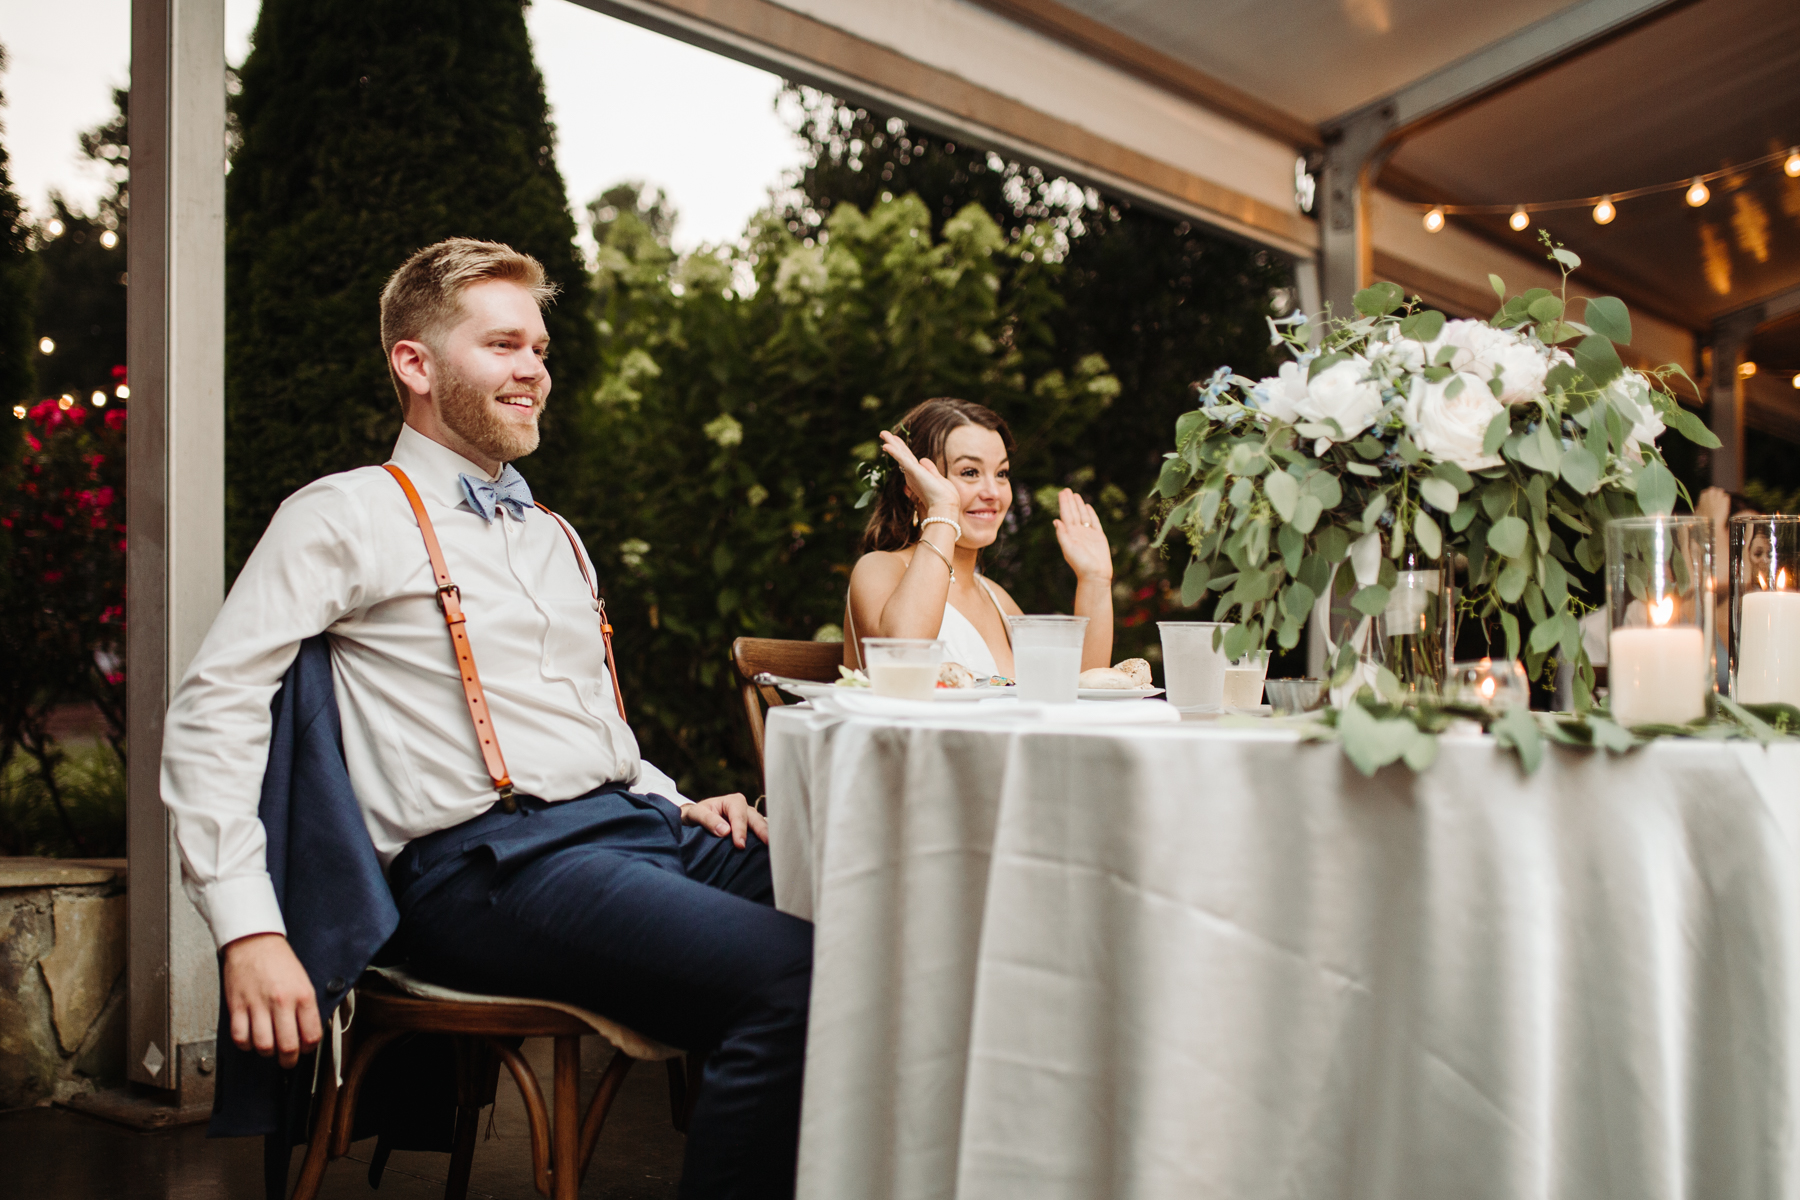 Toasts during the reception of a Sunny summer wedding at Dara's Garden in Knoxville, Tennessee